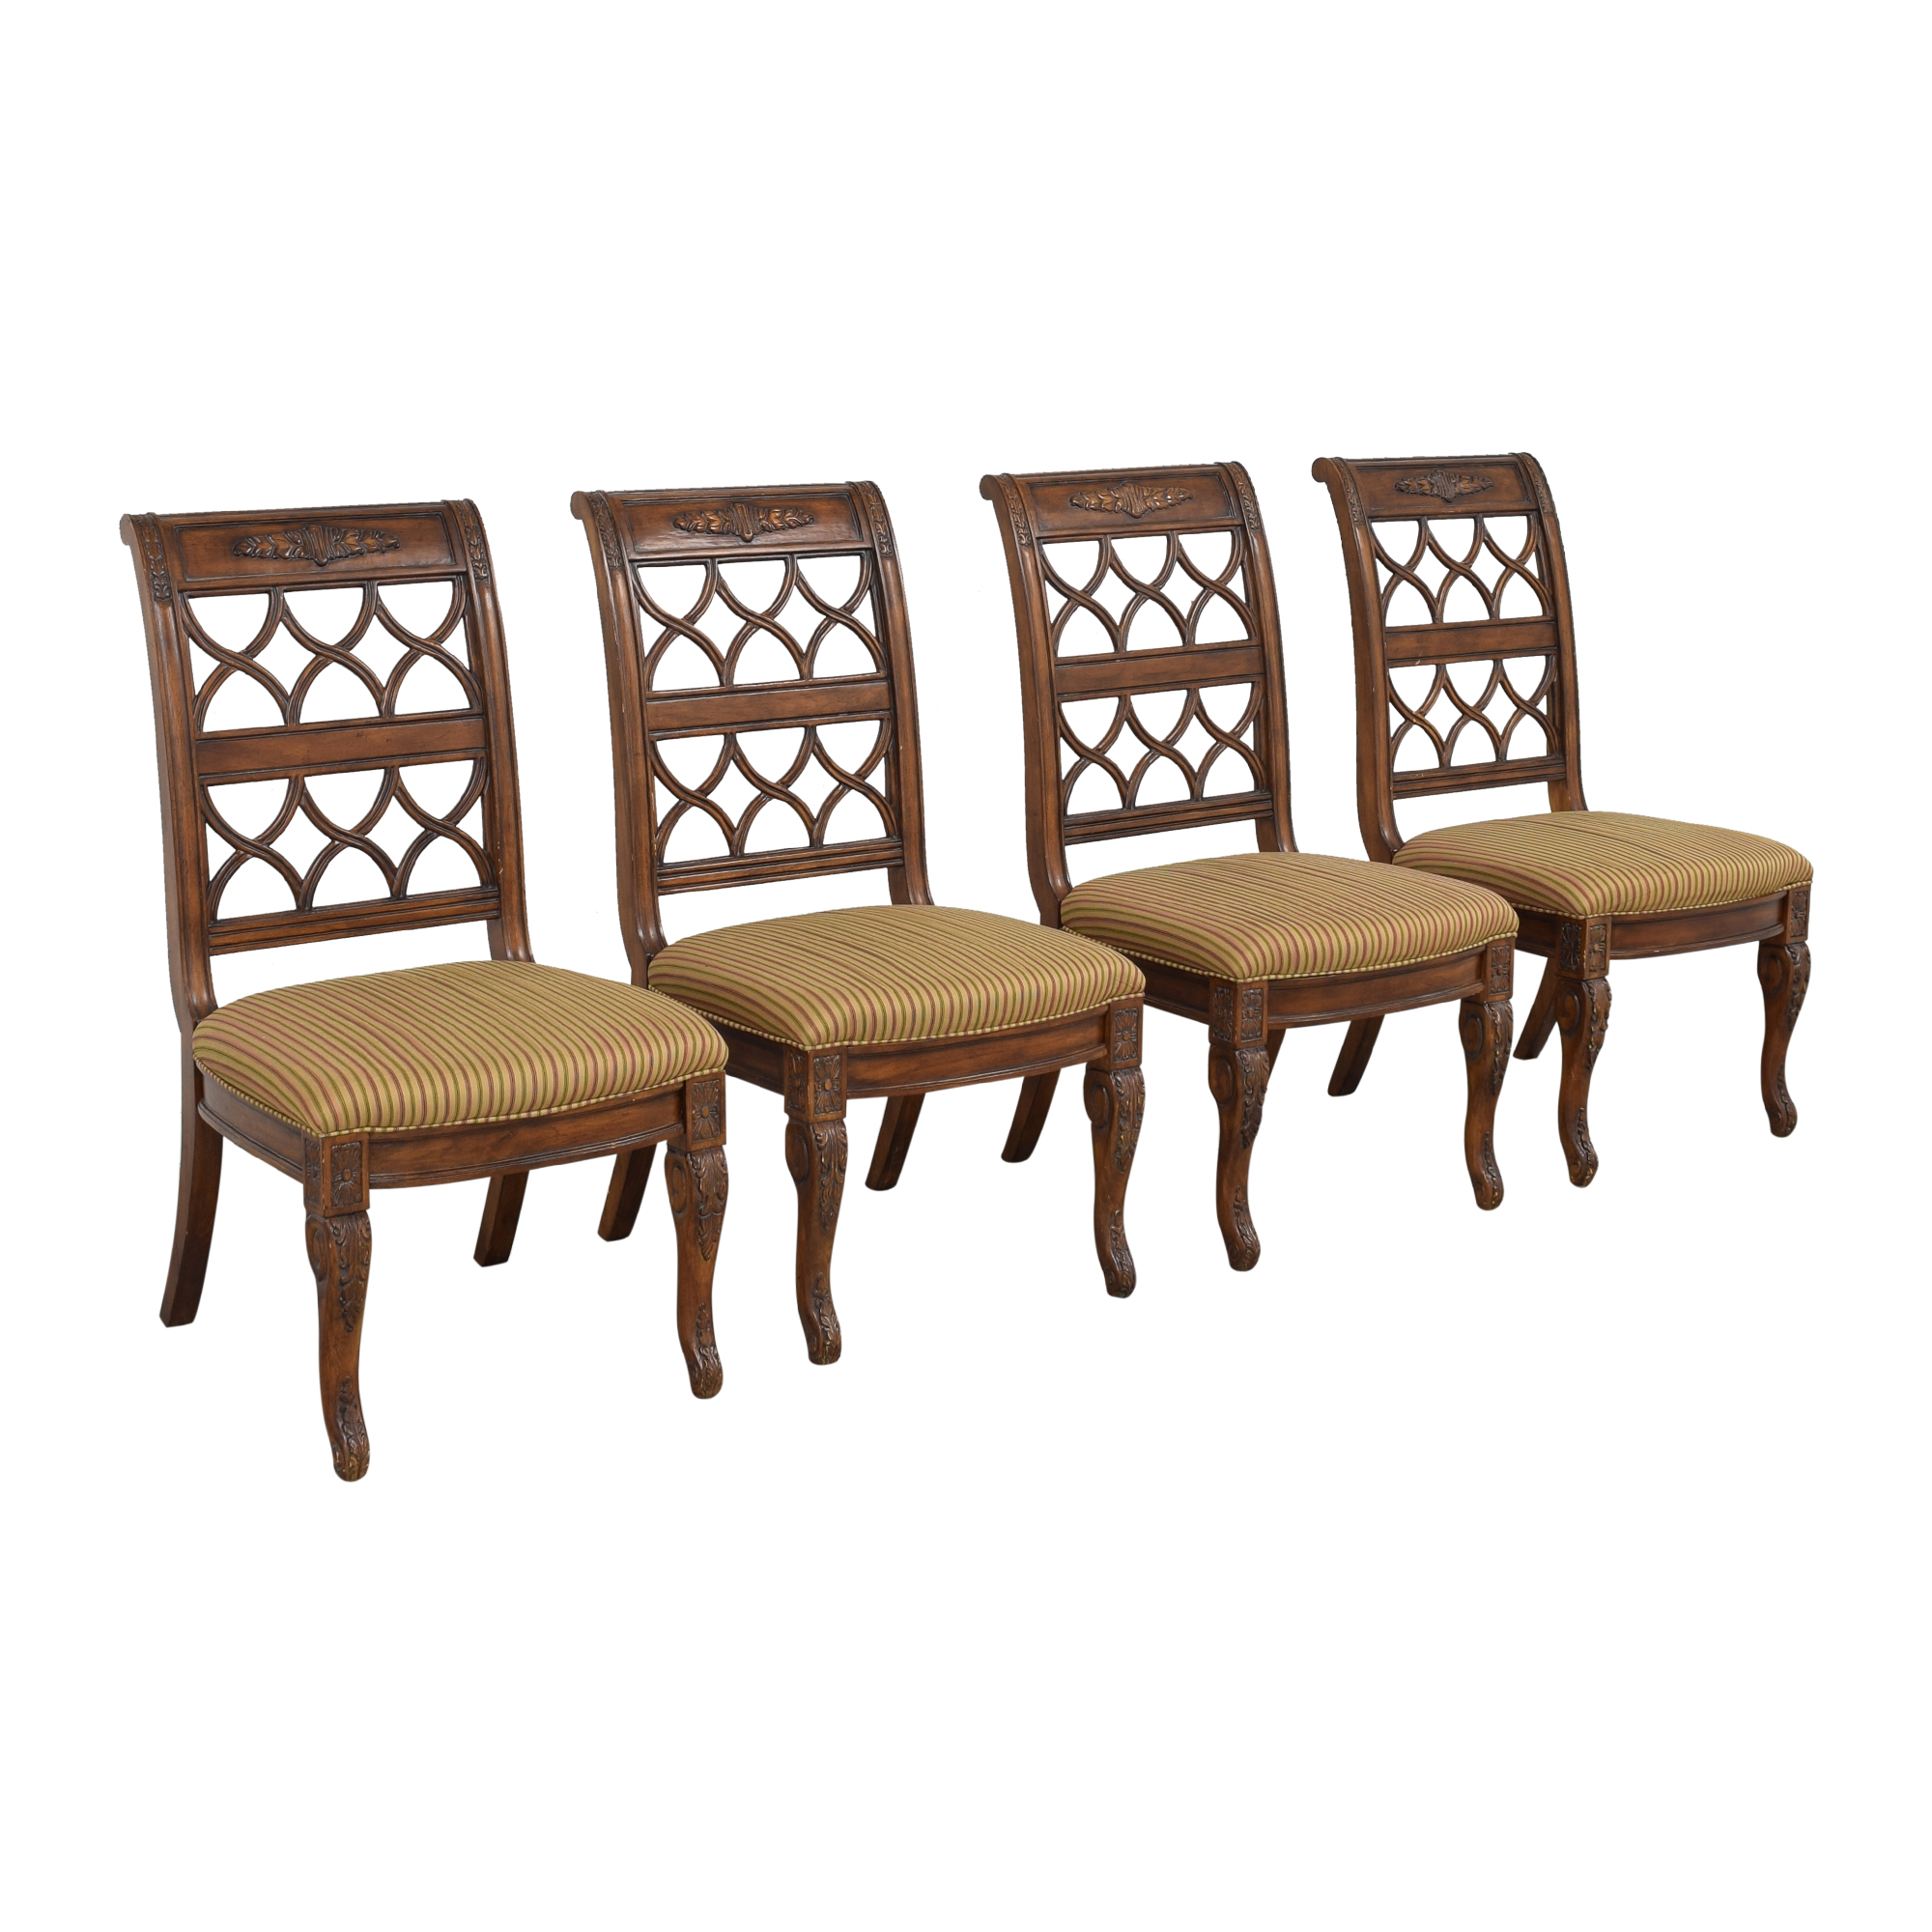 buy Drexel Heritage Dining Side Chairs Drexel Heritage Dining Chairs